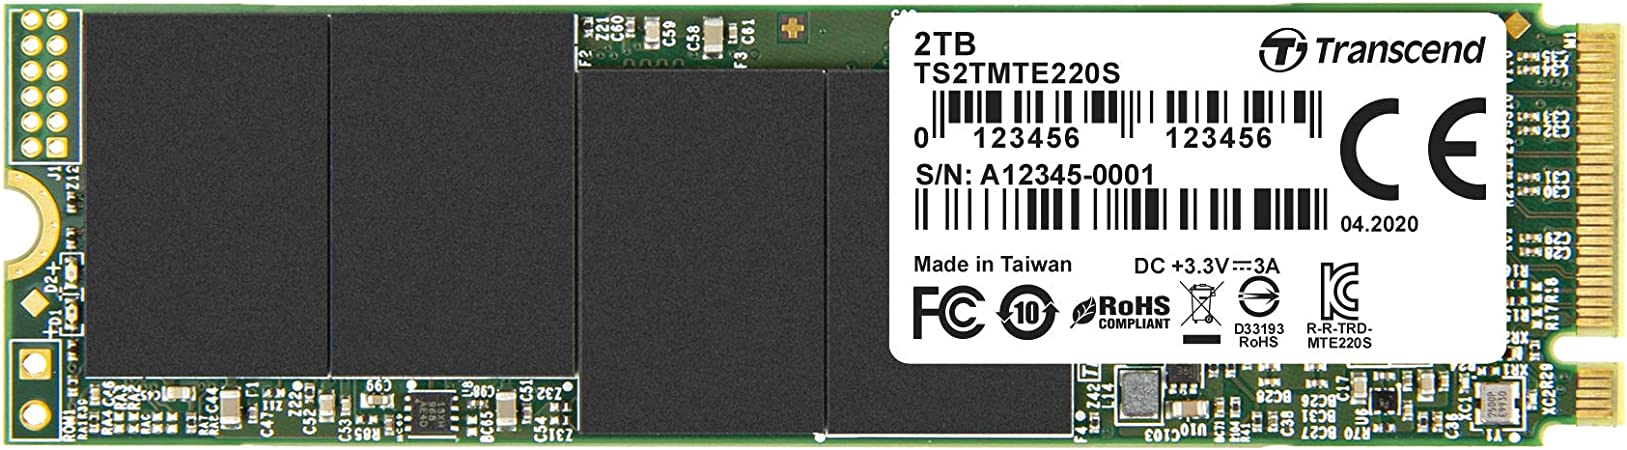 Transcend Ts2tmte220s 2tb M 2 Ultra High Speed Ssd For High End Applications Fast Transfer Up To 3 500 2 700 Mb S Pcie Gen3 X4 2280 Amazon De Computer Accessories